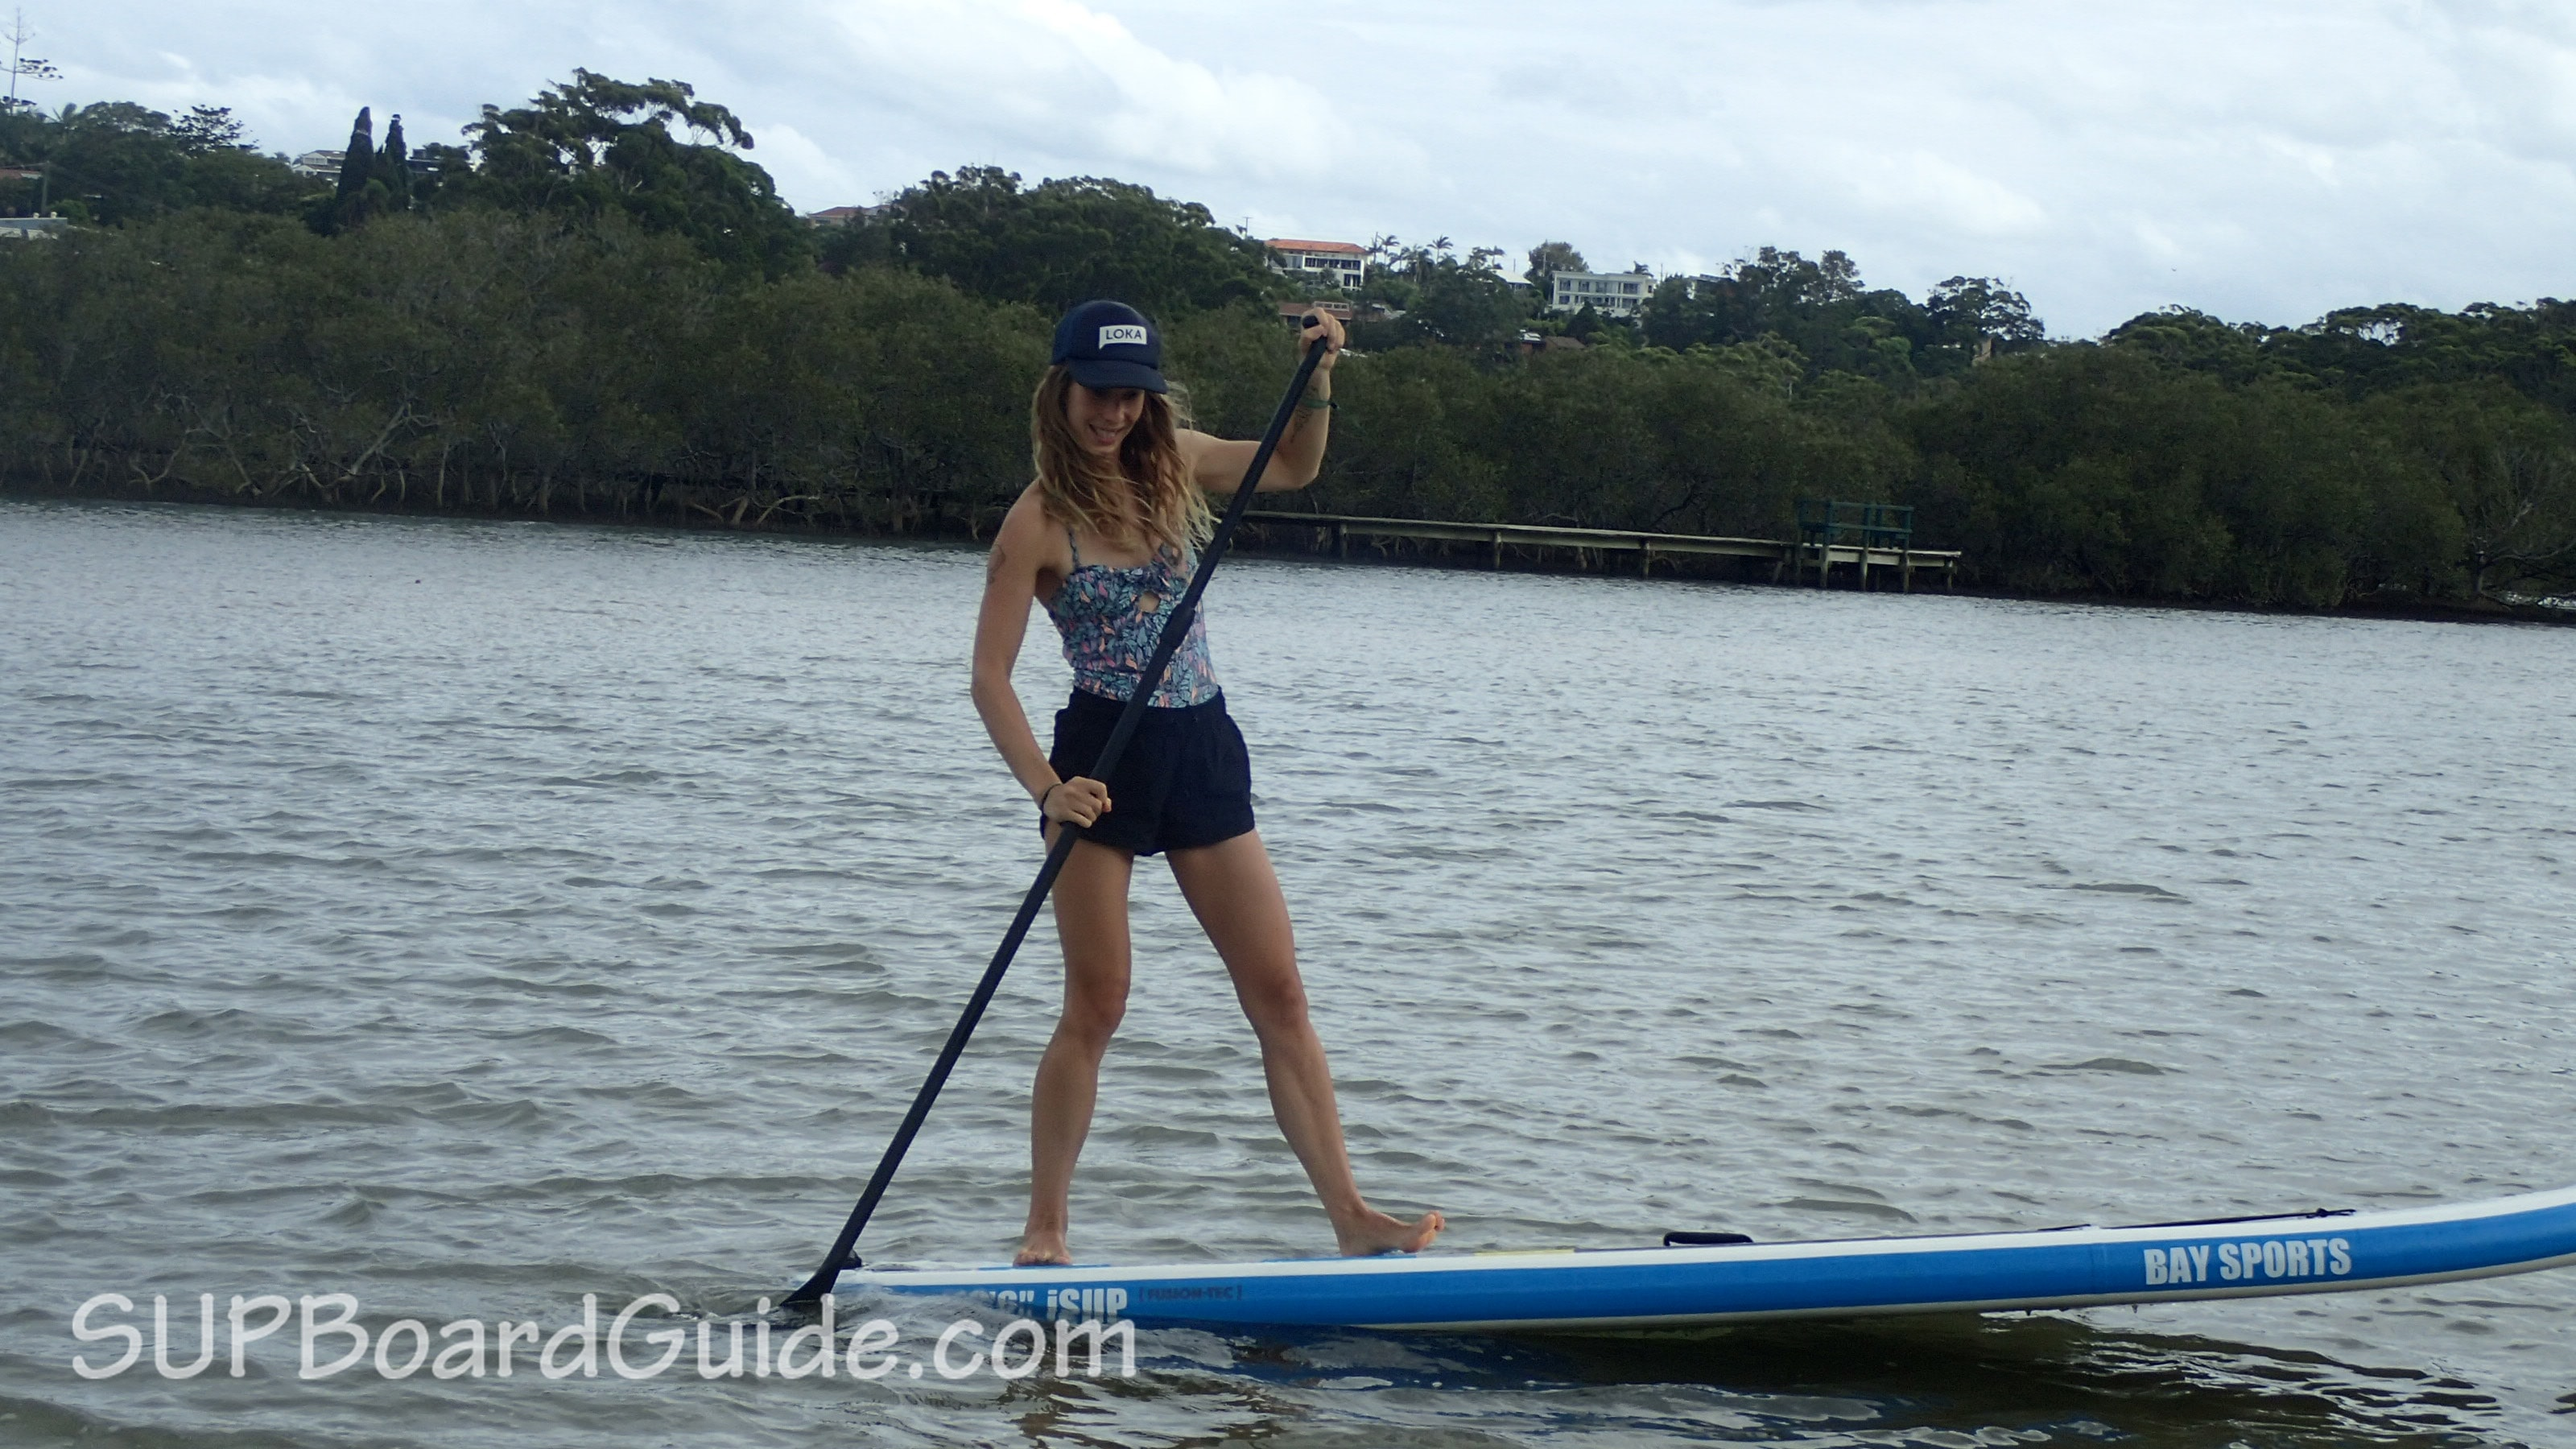 Turning Bay Sports SUP